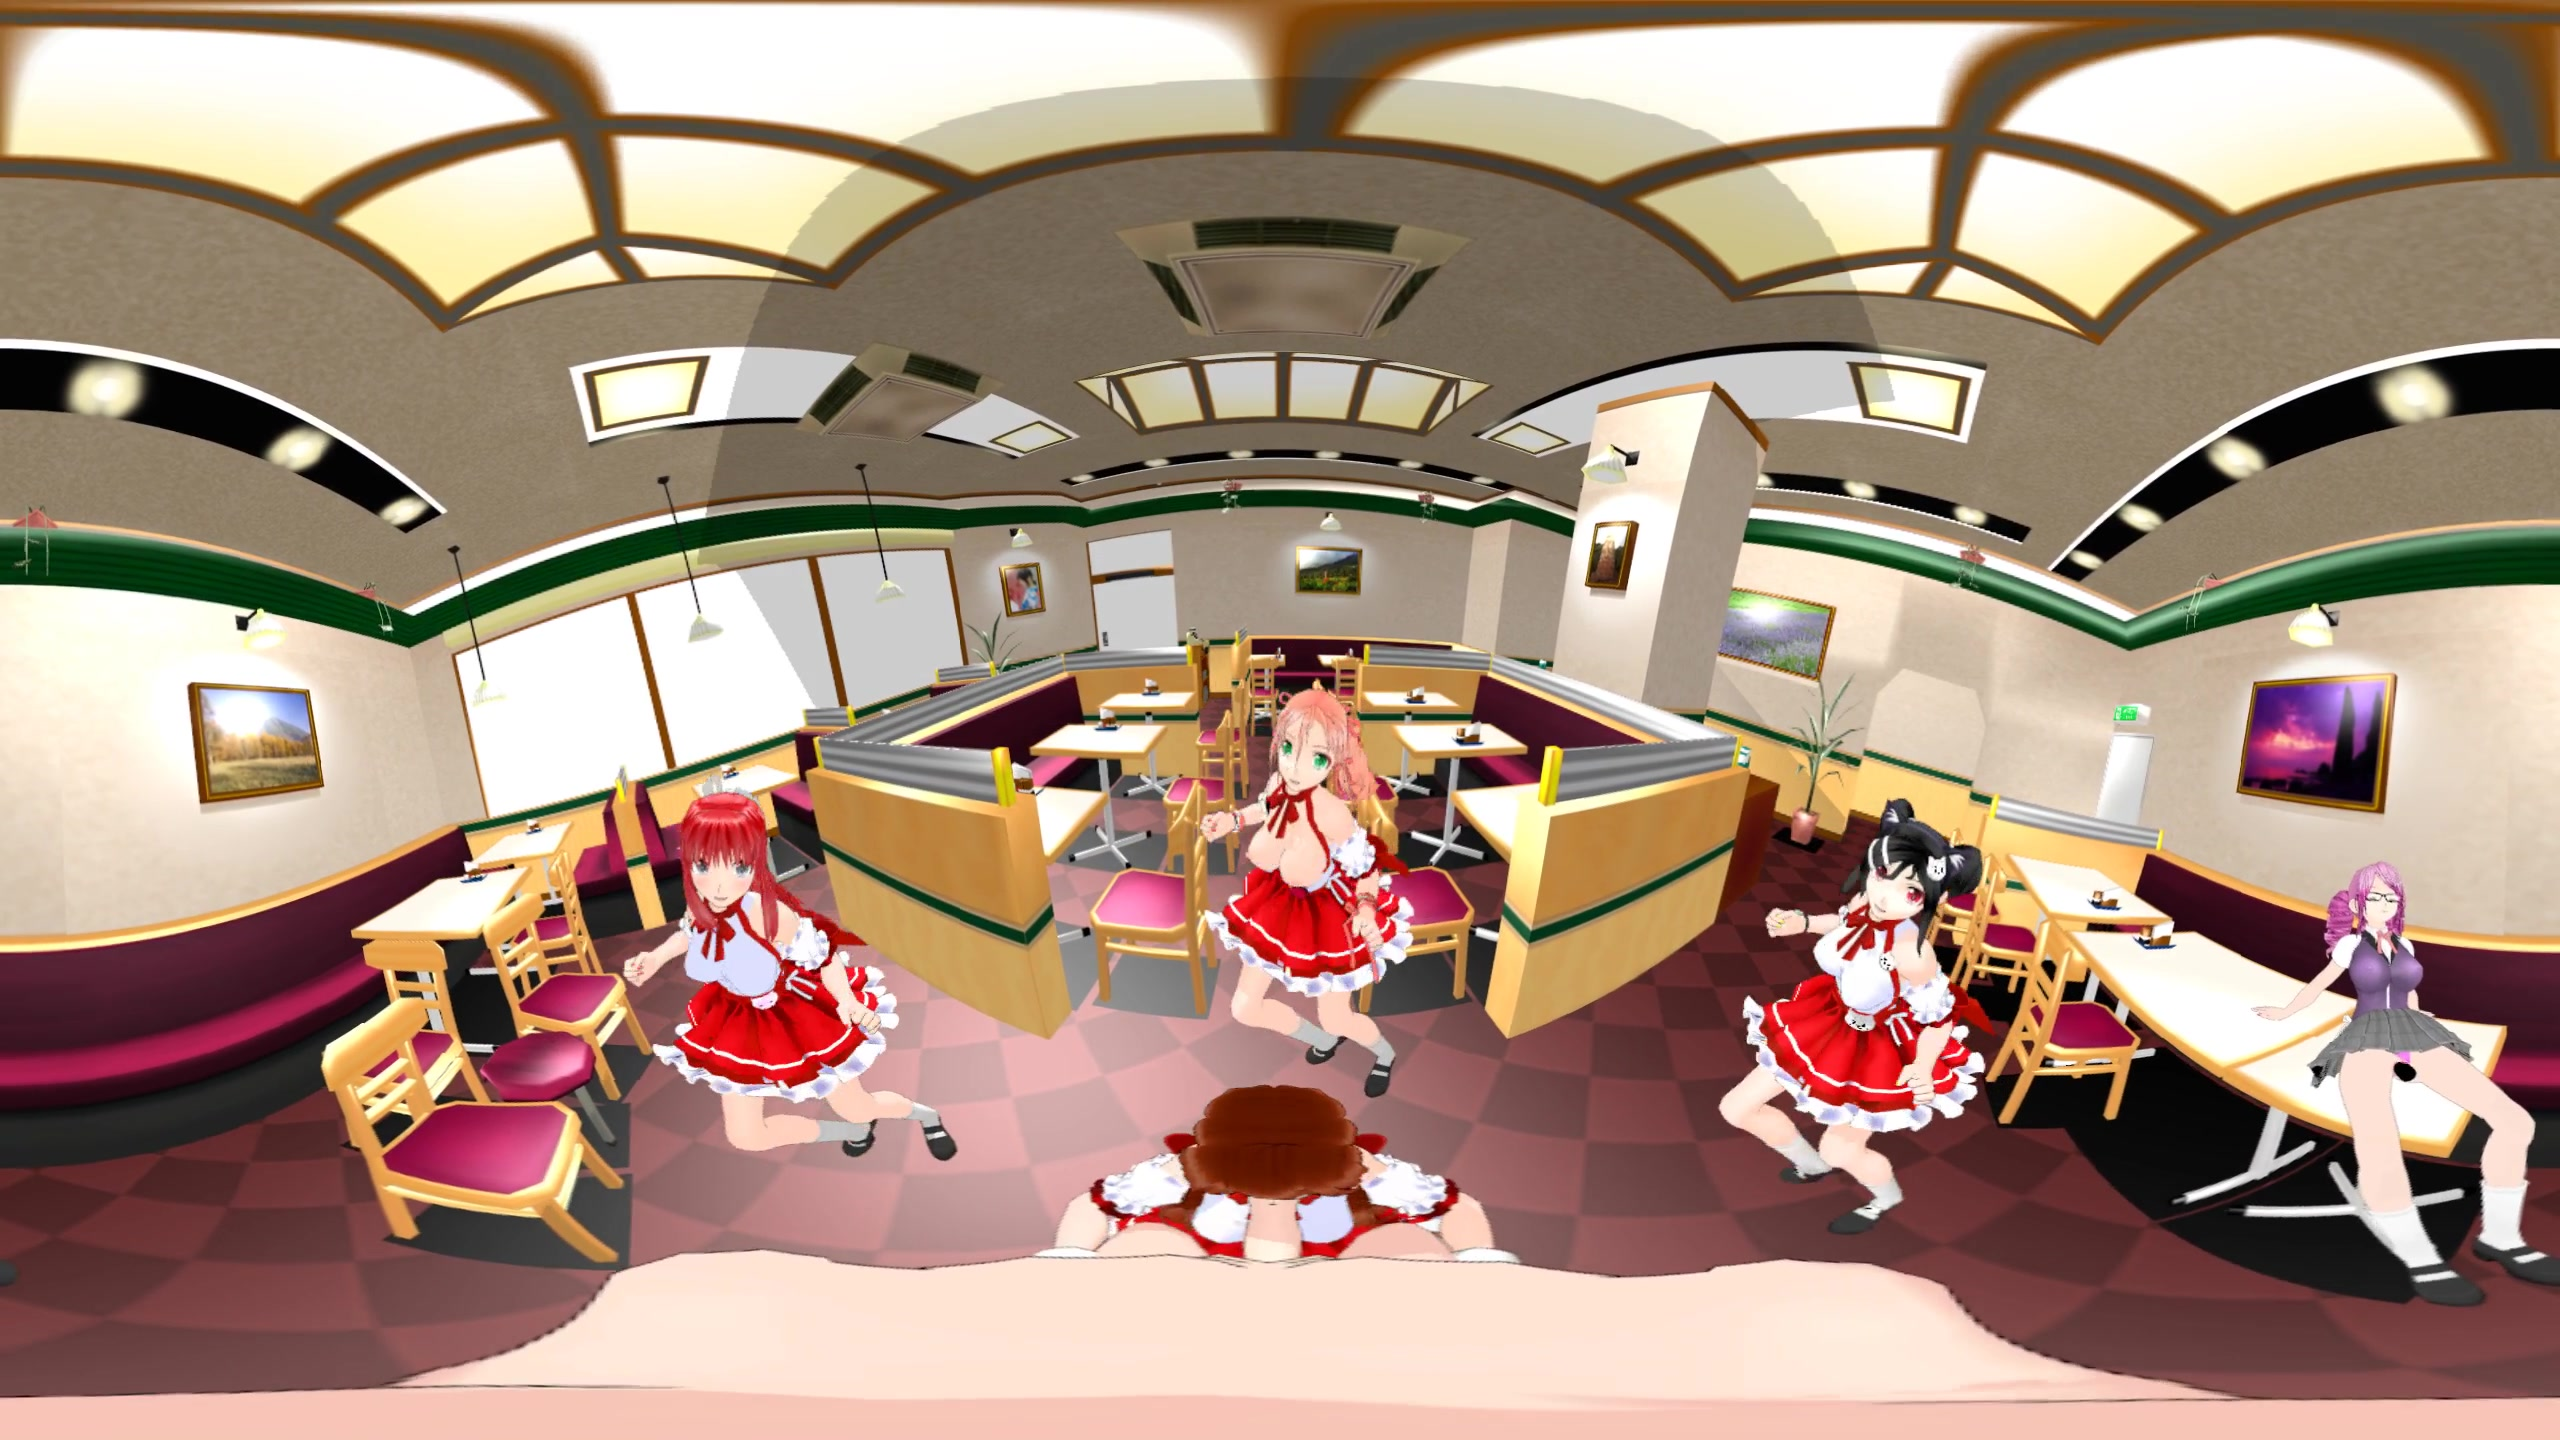 sexy dancing anime girls in cafe with blowjob - vr porn video